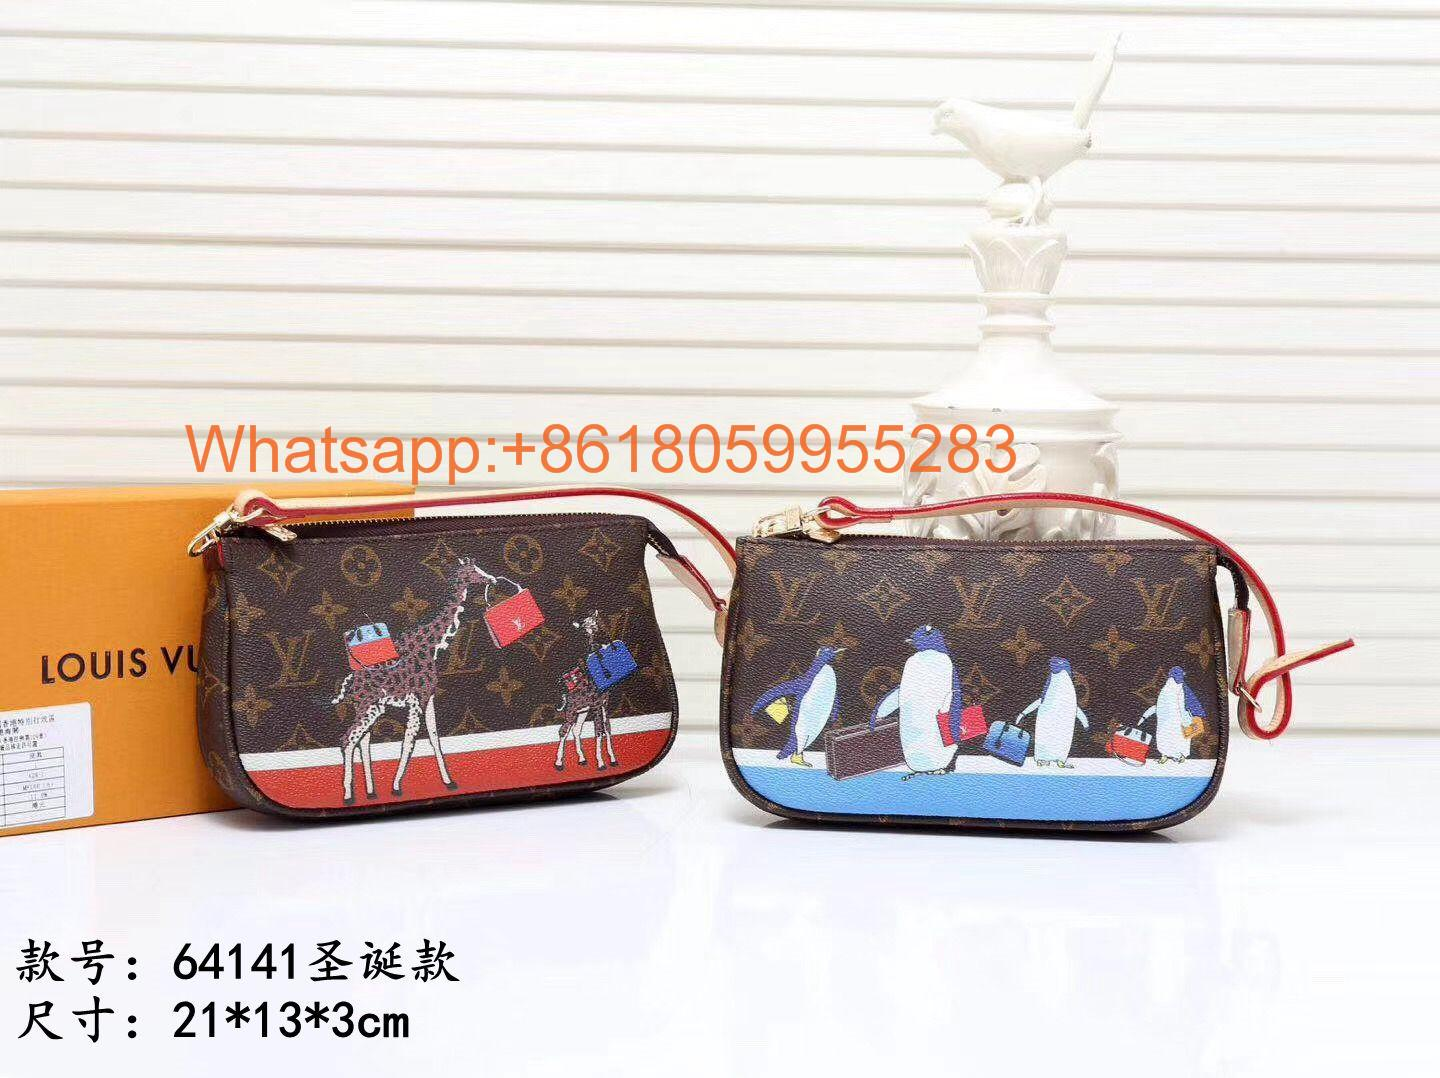 Cheap Louis Vuitton Bags Women LV Handbags Replica Louis Vuitton Handbags LV Bag